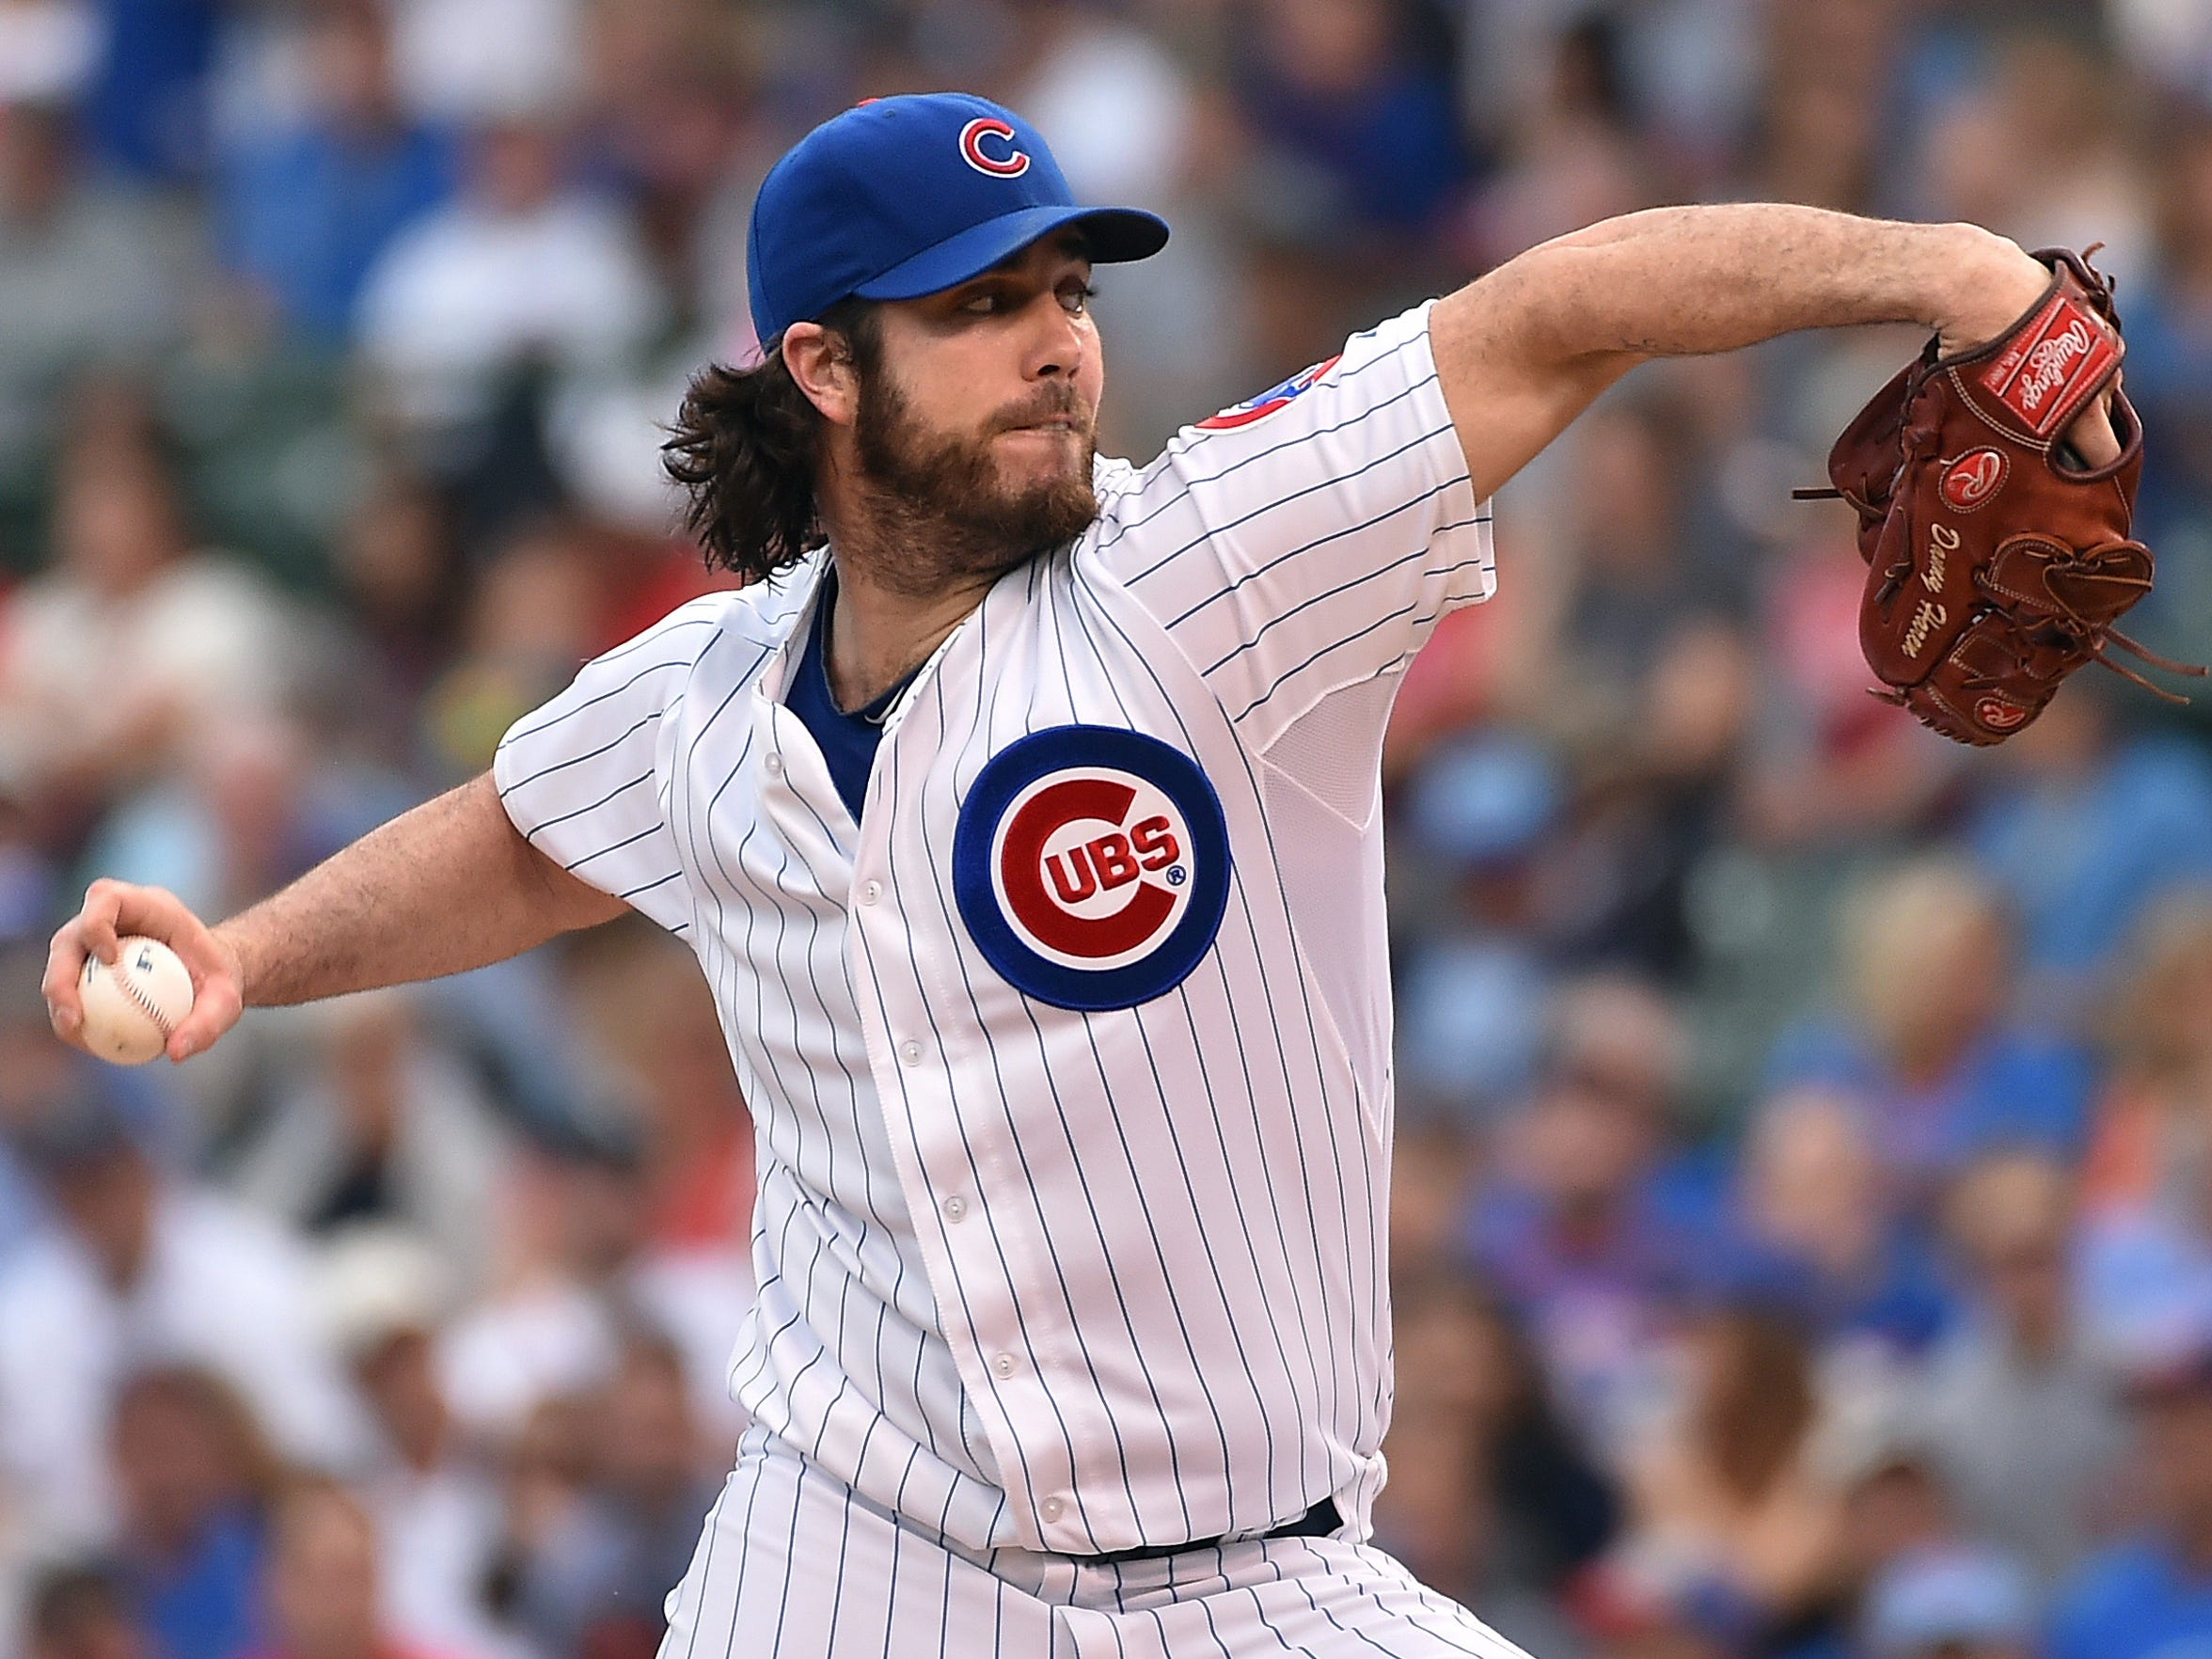 Dan Haren pitches for the Cubs in his final season in 2015.